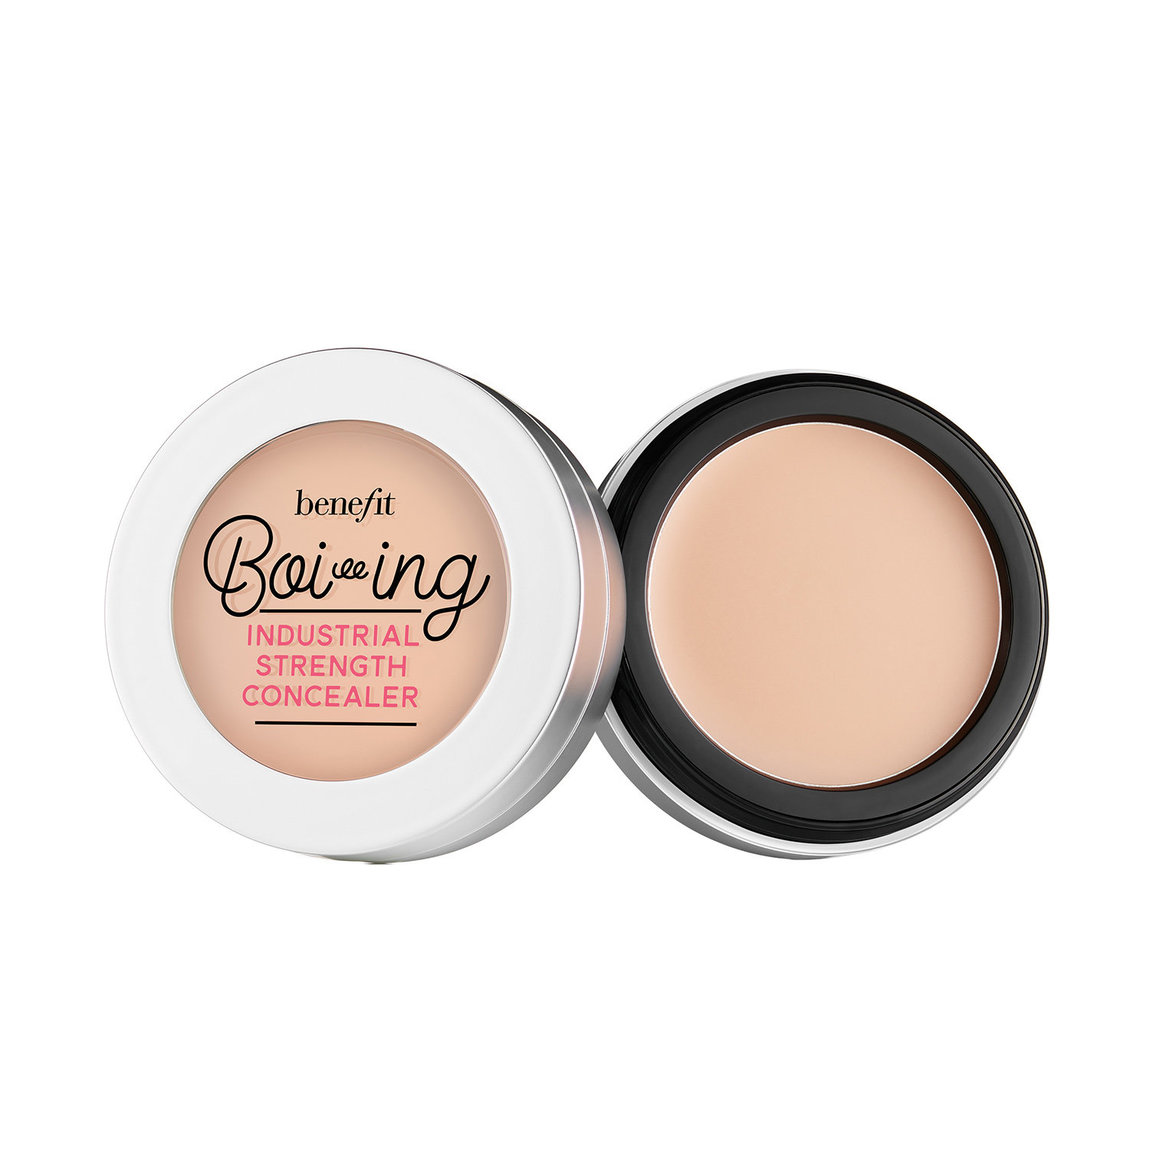 Benefit Cosmetics Boi-ing Industrial Strength Concealer 01 Light